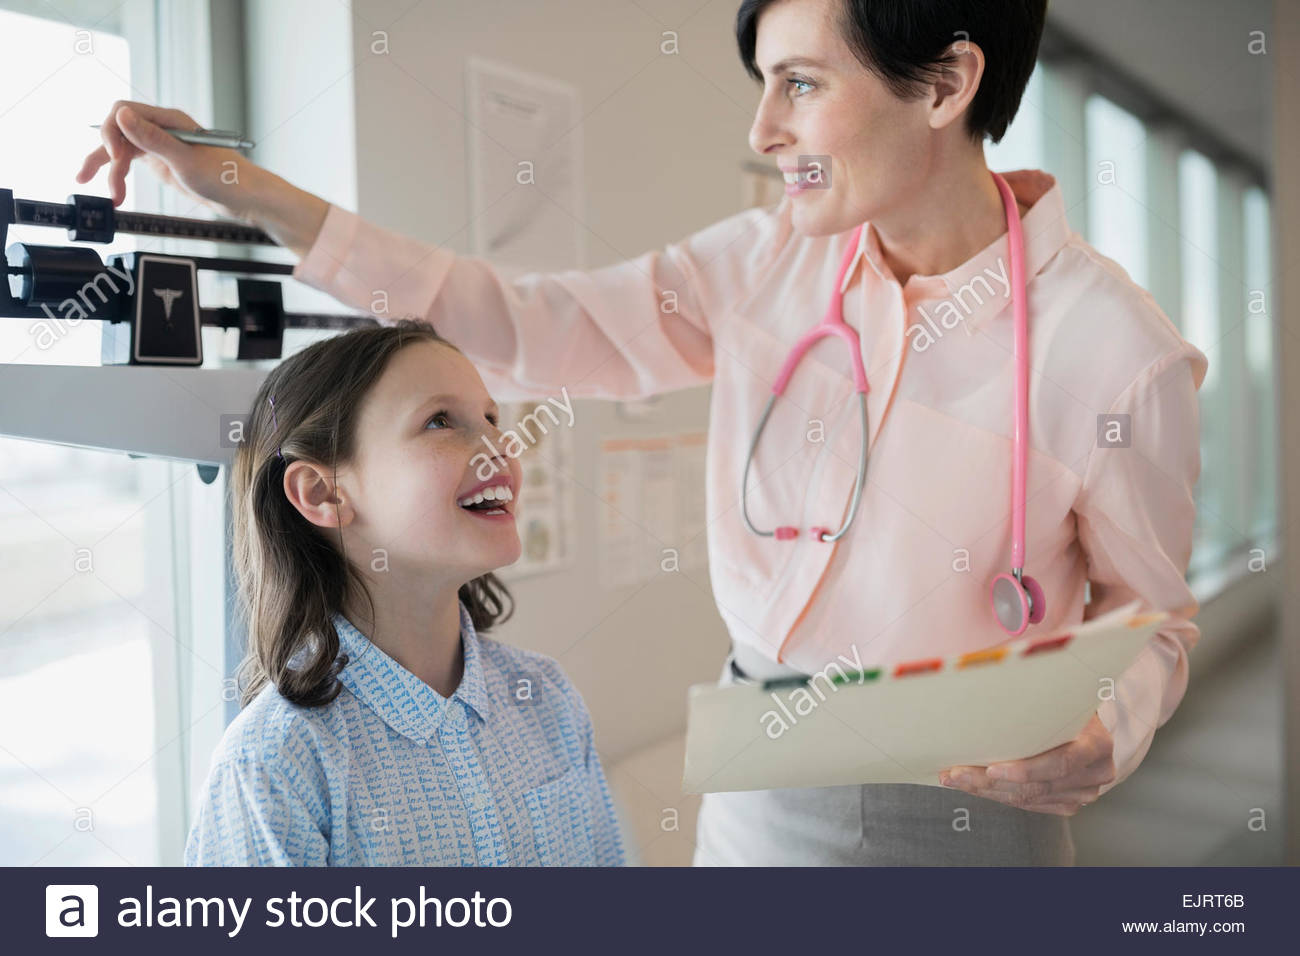 Pediatrician measuring girls weight on scale in clinic - Stock Image